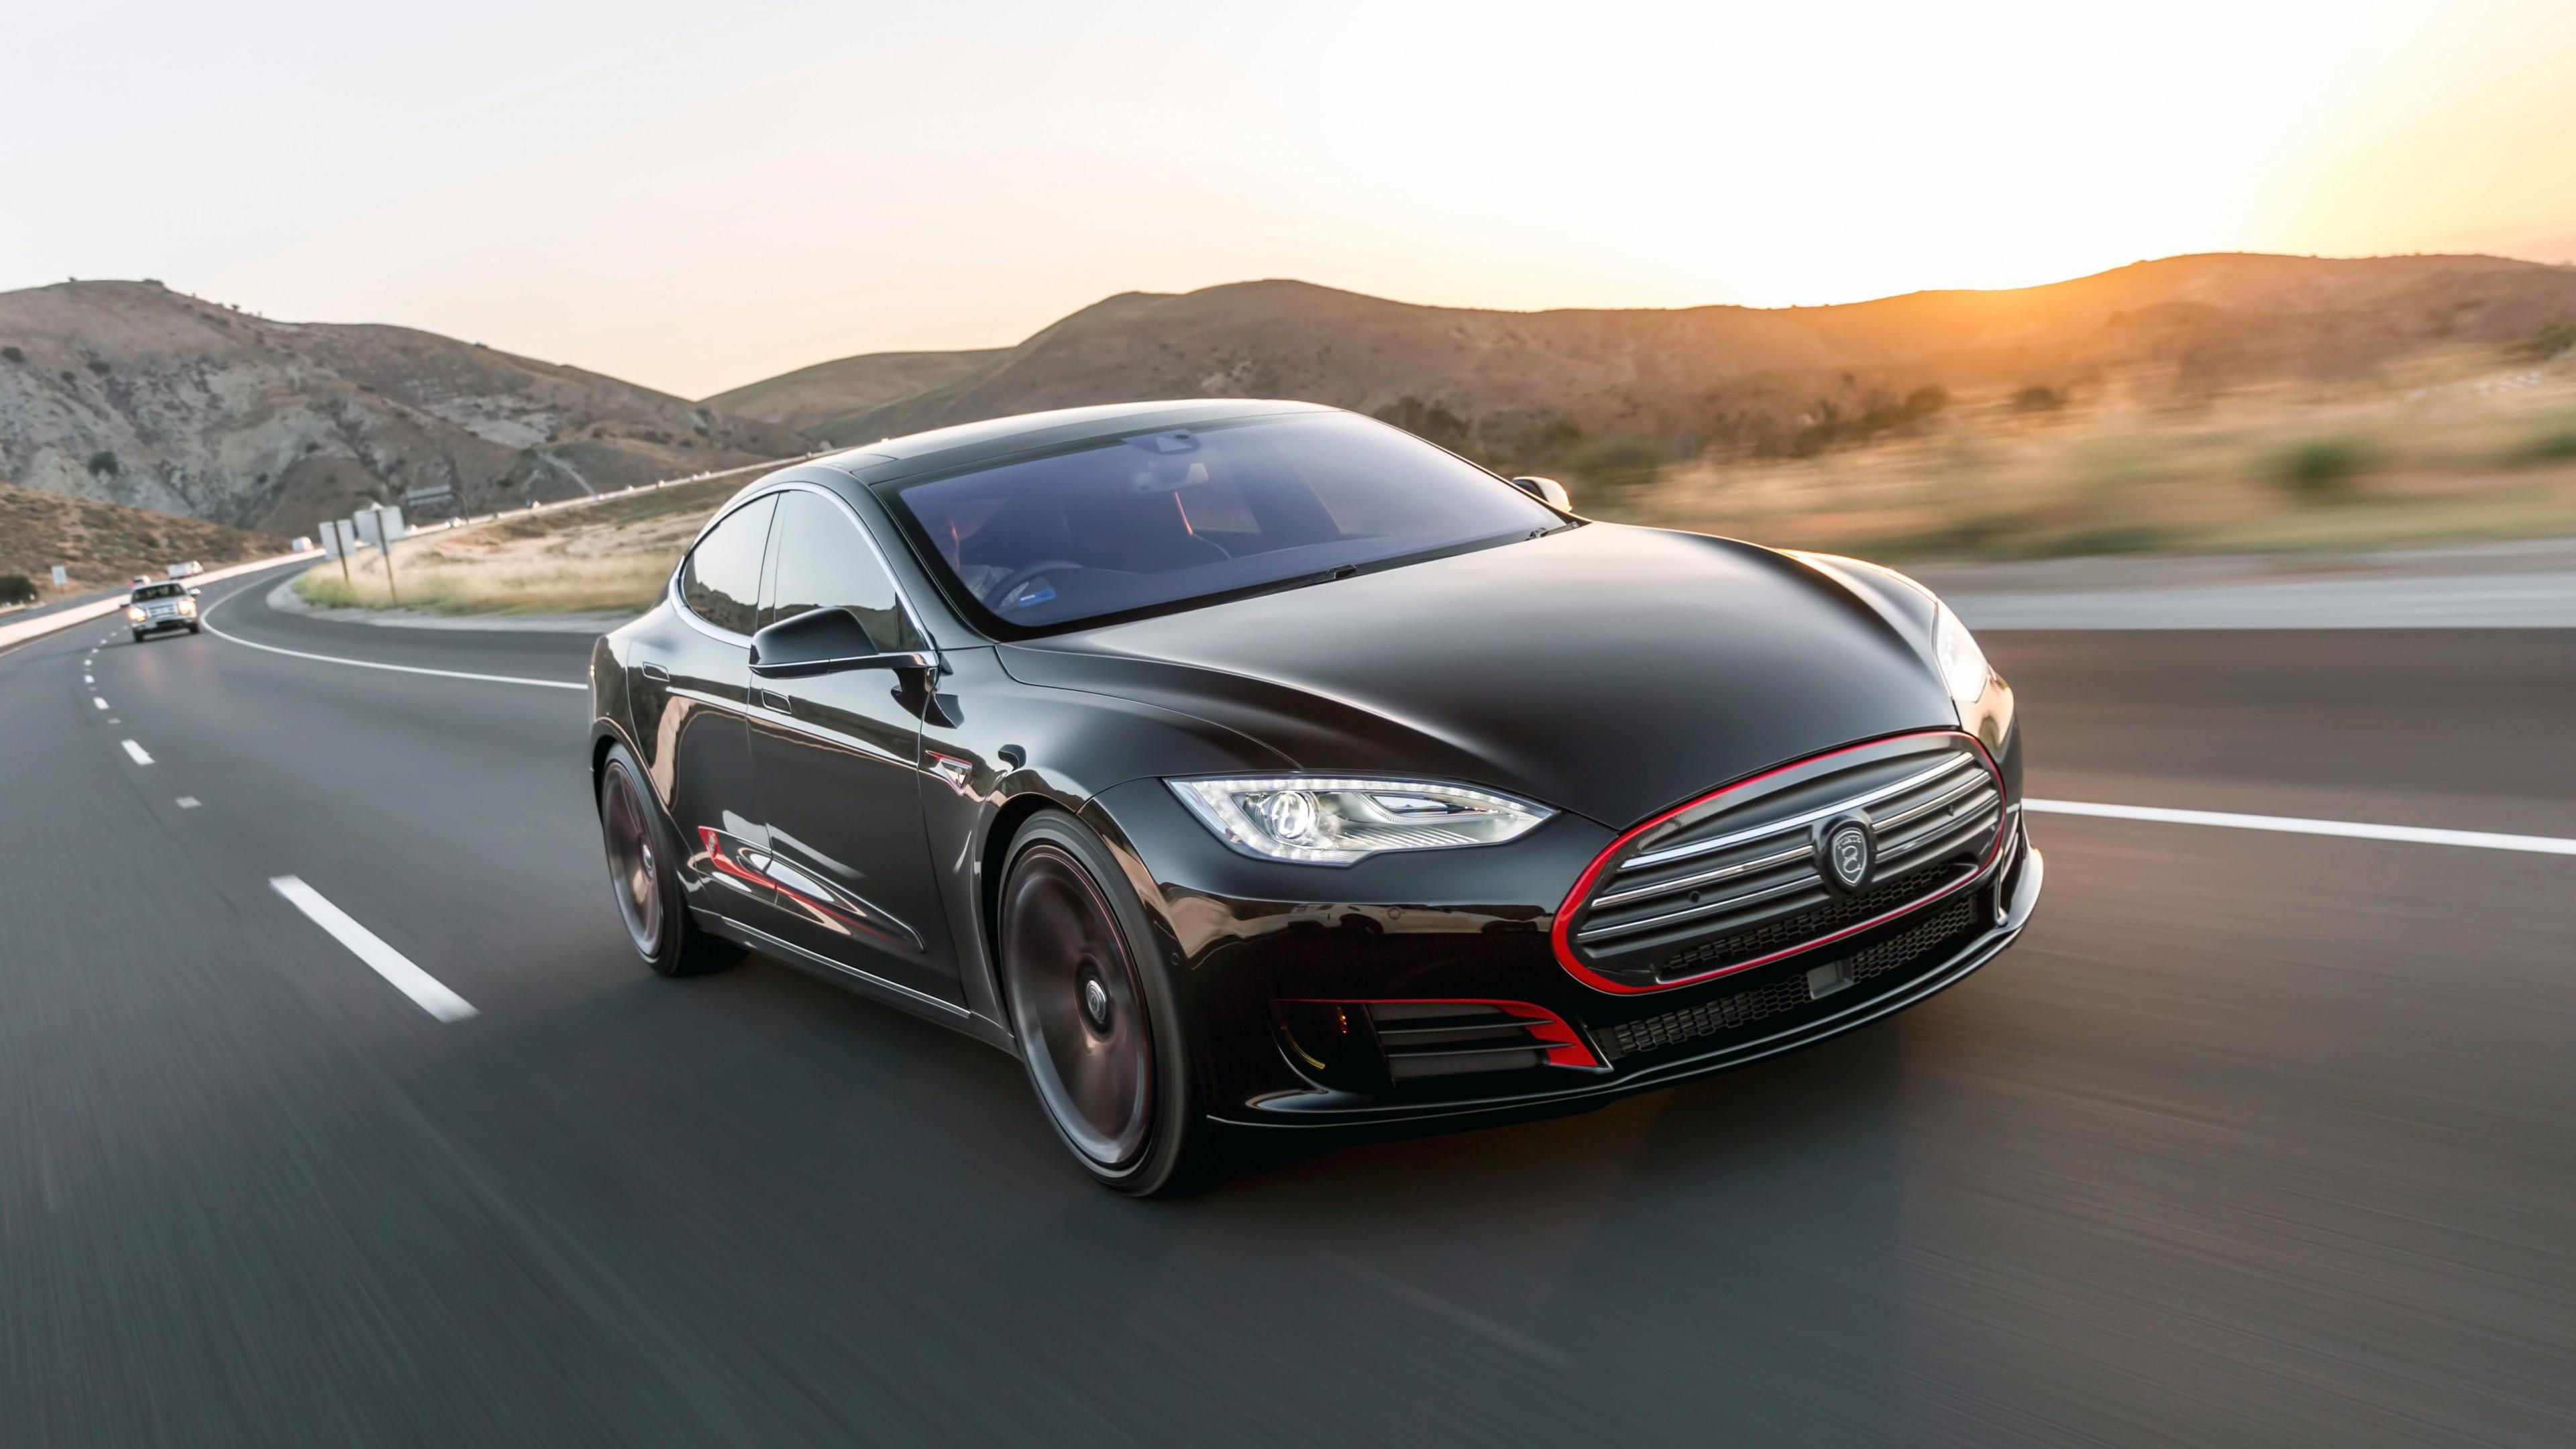 Tesla Model S now available in 100D trim, best range to date